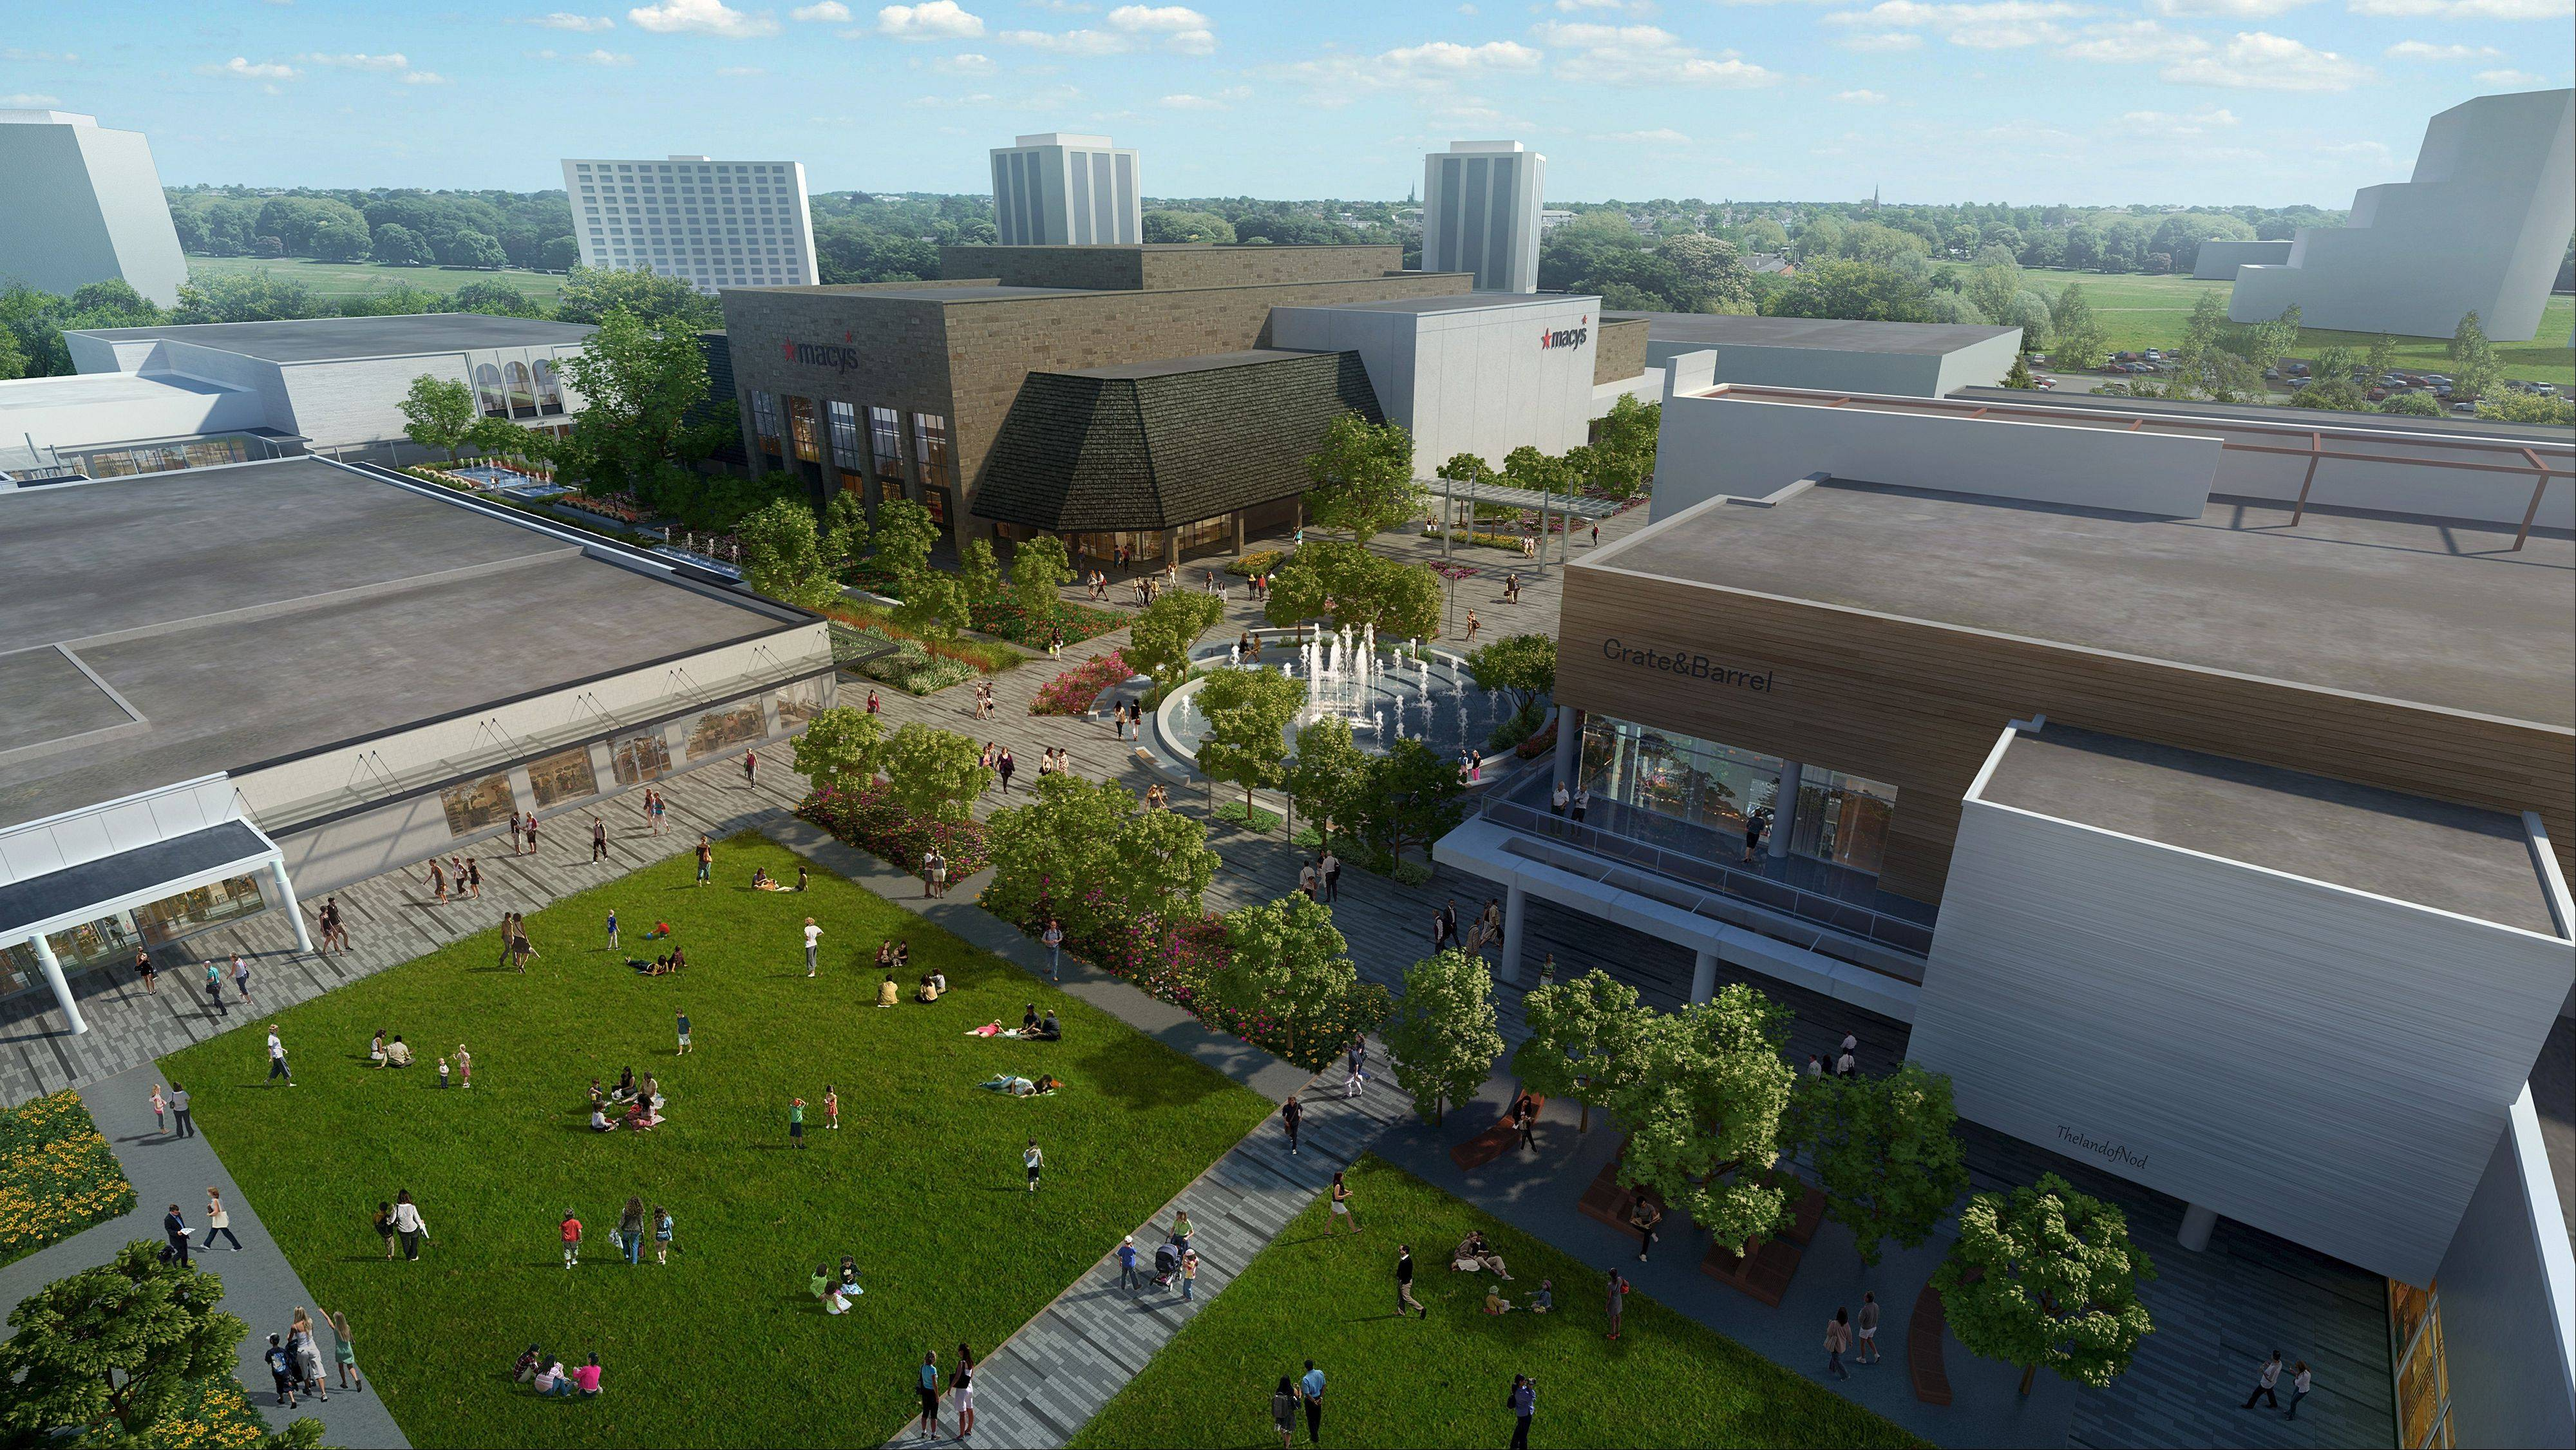 The Village Green, shown in this virtual rendering of the Oakbrook Center renovations, will be used for outdoor events, including concerts.